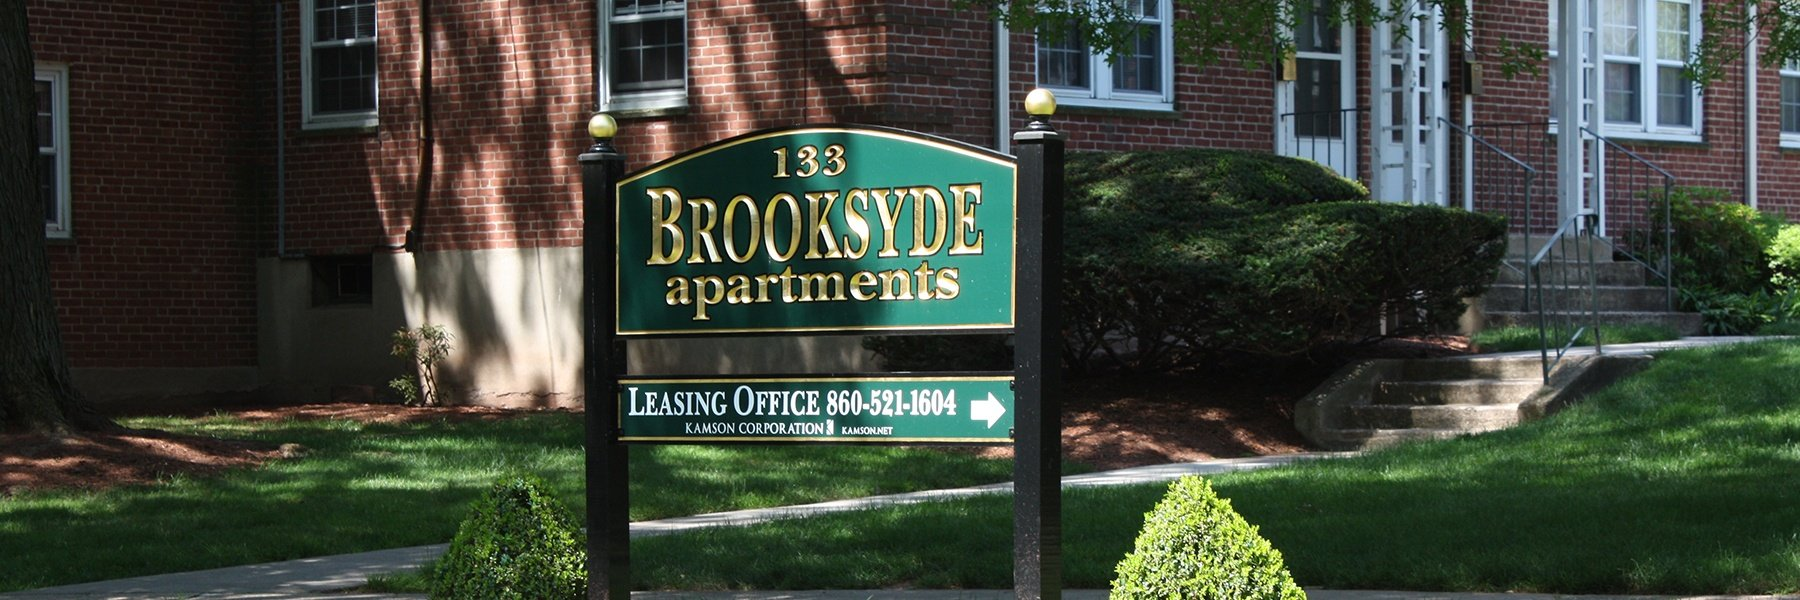 Brooksyde Apartments For Rent in West Hartford, CT